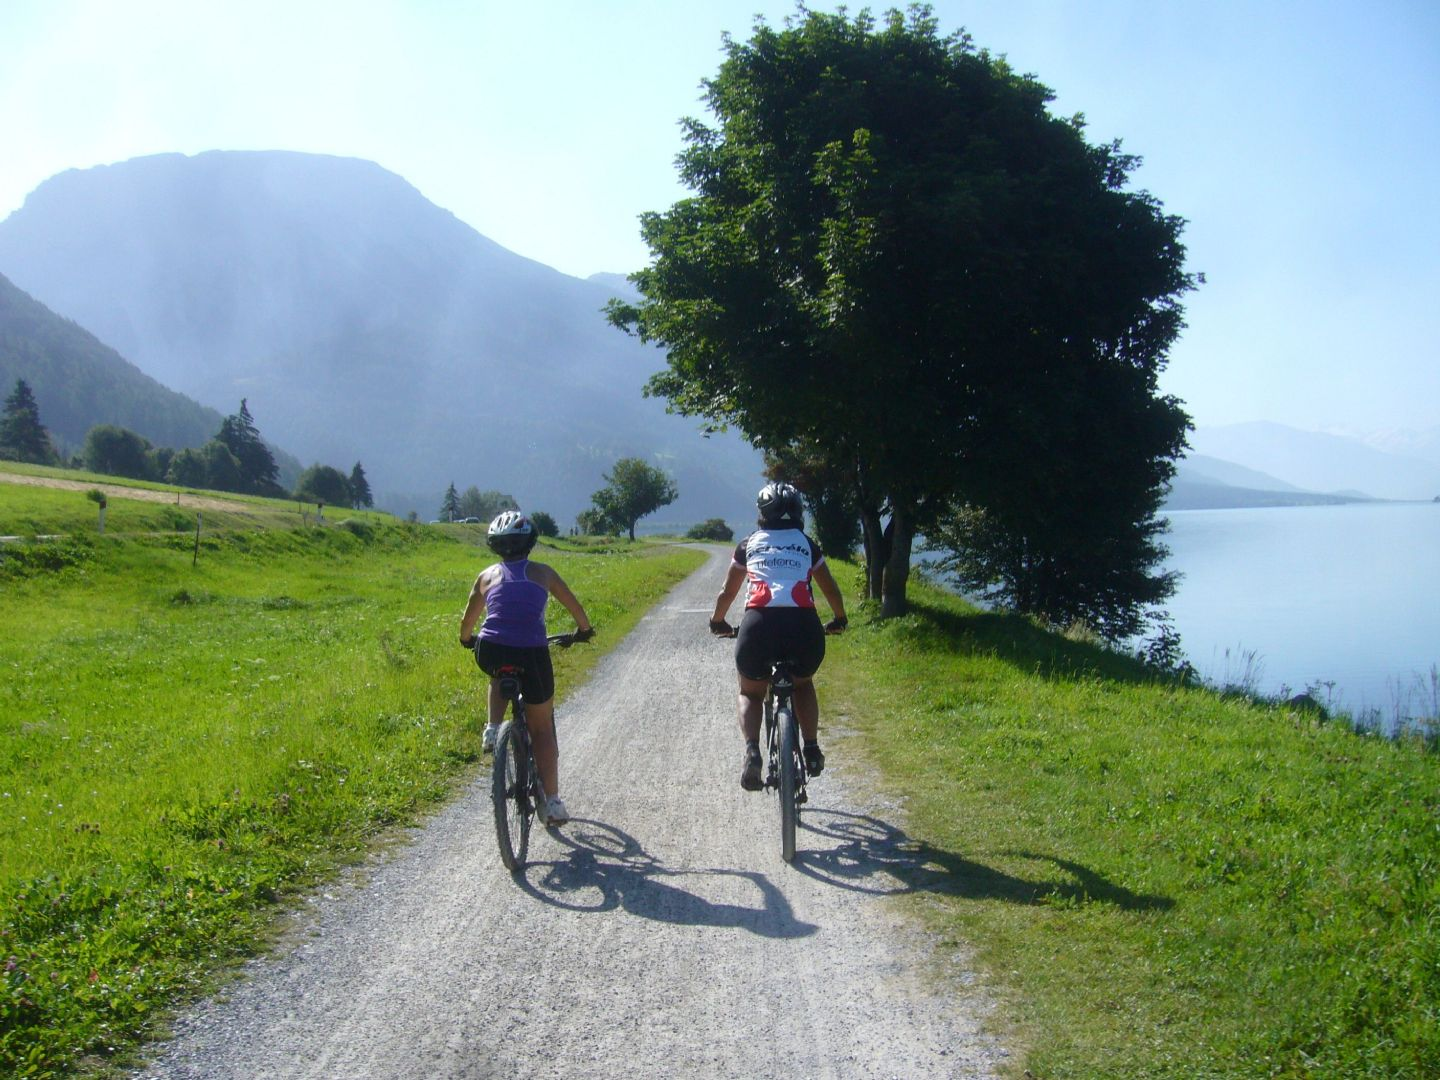 italy-supported-family-cycling-holliday-via-claudia.jpg - Northern Italy - Gentle Via Claudia - Supported Family Cycling Holiday - Italia Leisure and Family Cycling